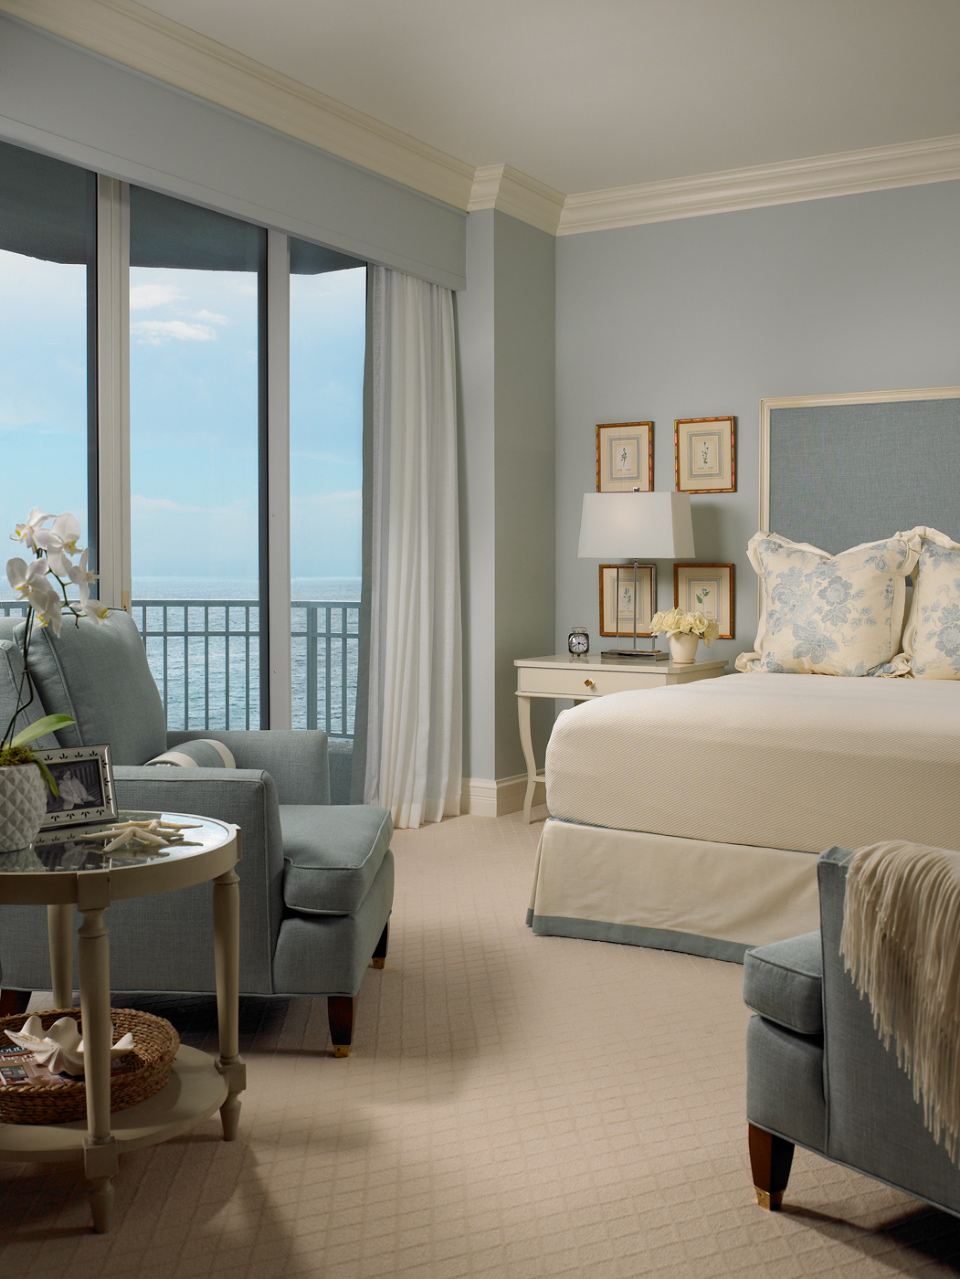 Soothing pale blue in anoceanfront master suite by Jill Shevlin Design